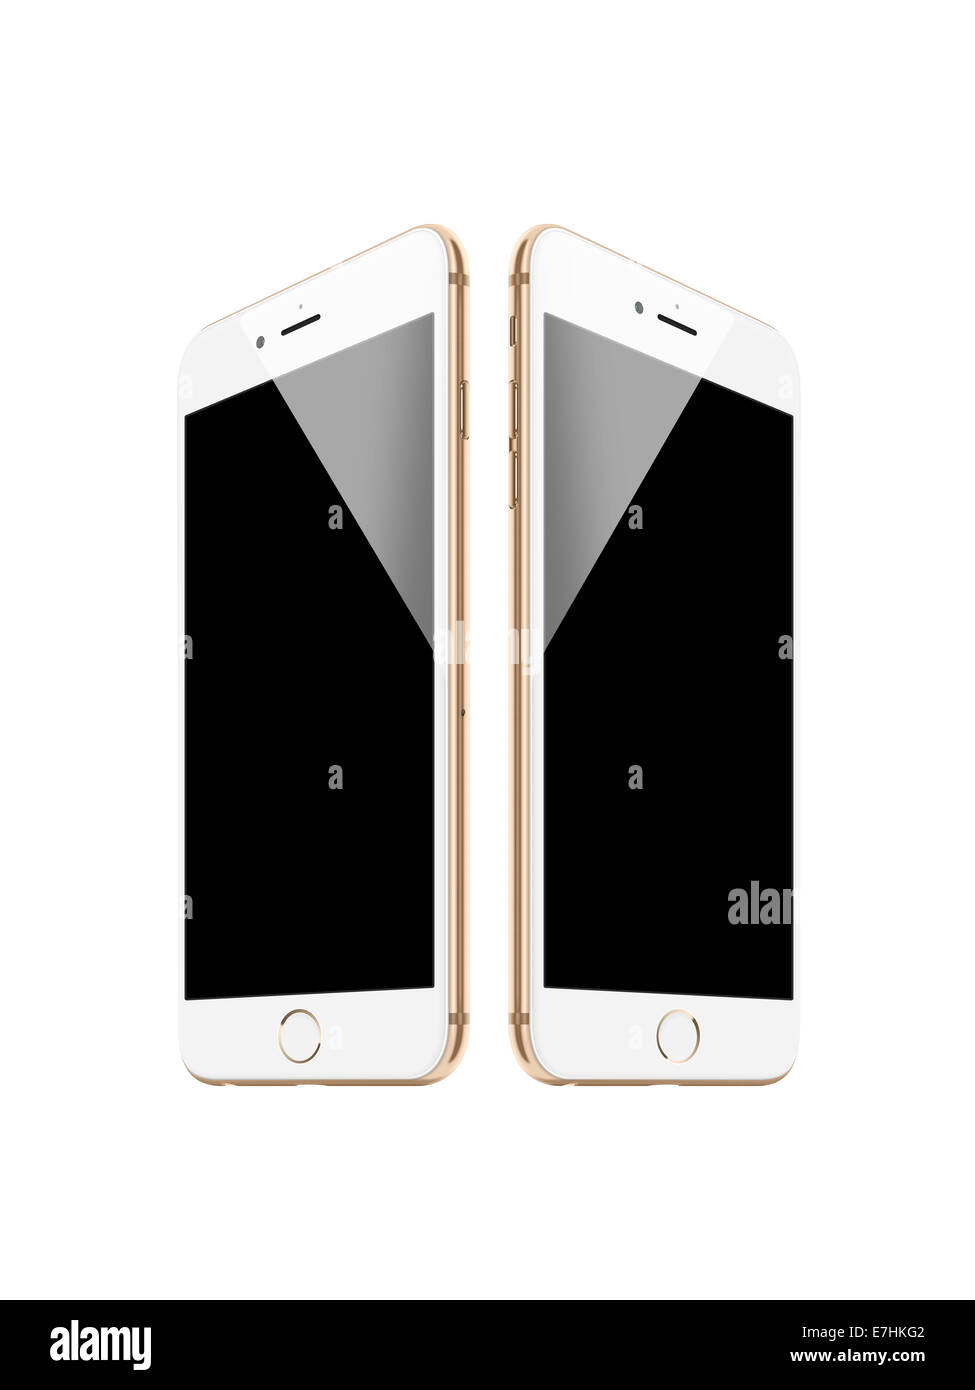 Digitally generated image of cell phones, iphone 6 gold. - Stock Image